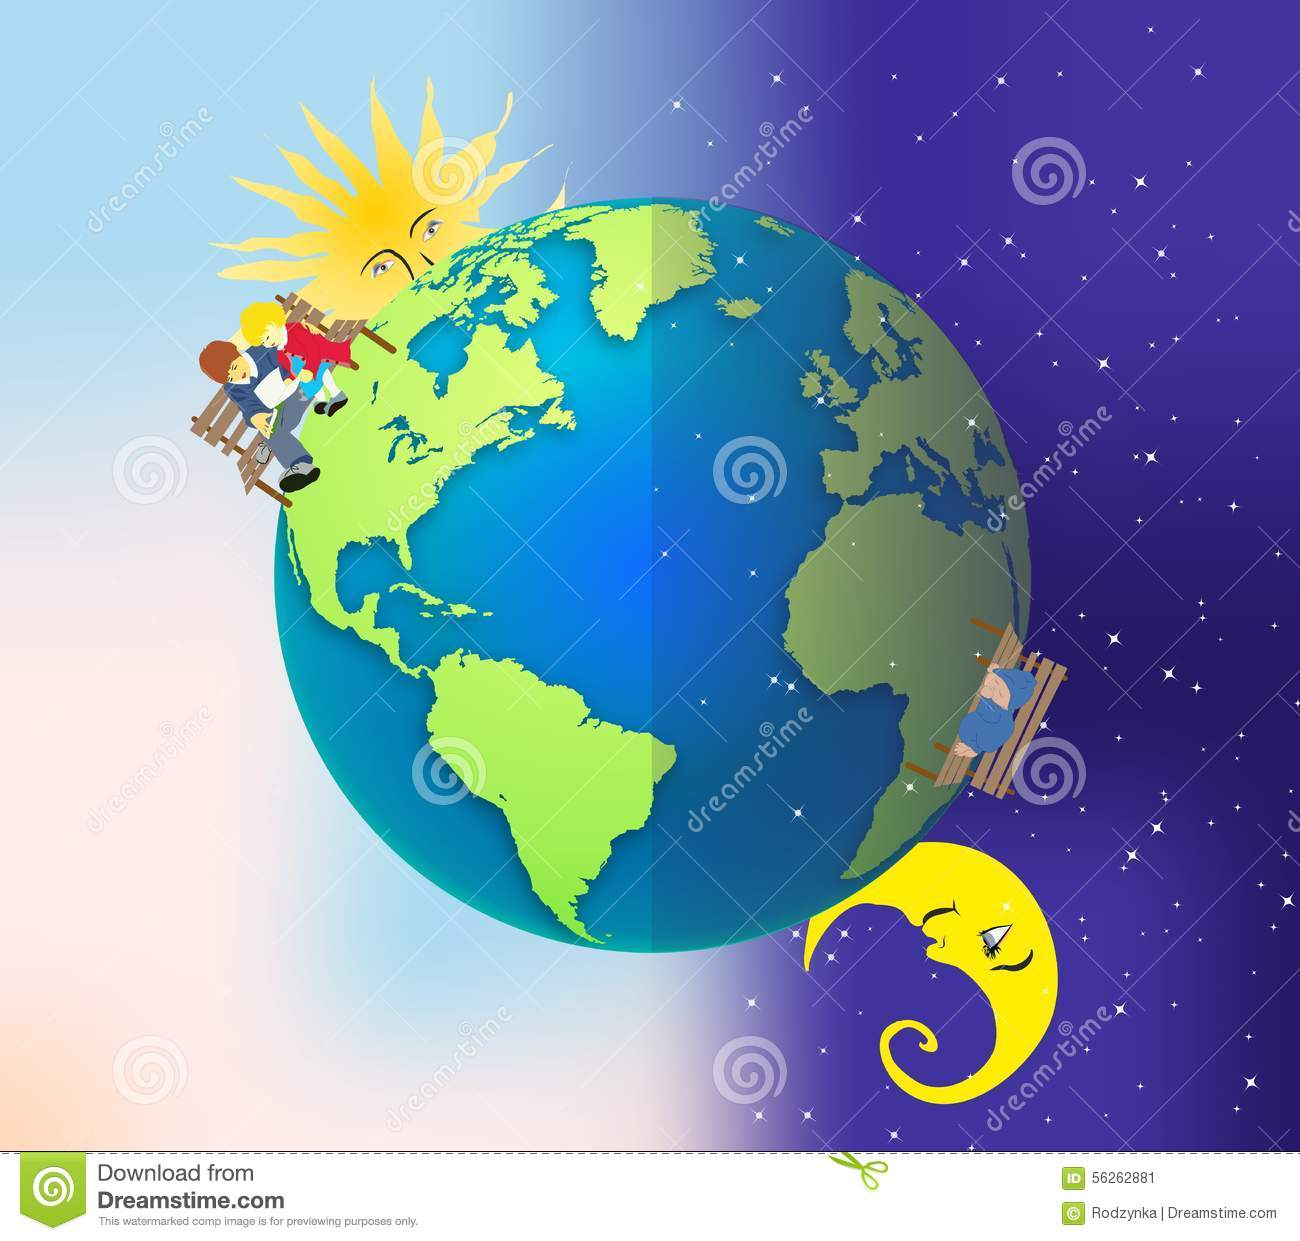 Day and night earth clipart.